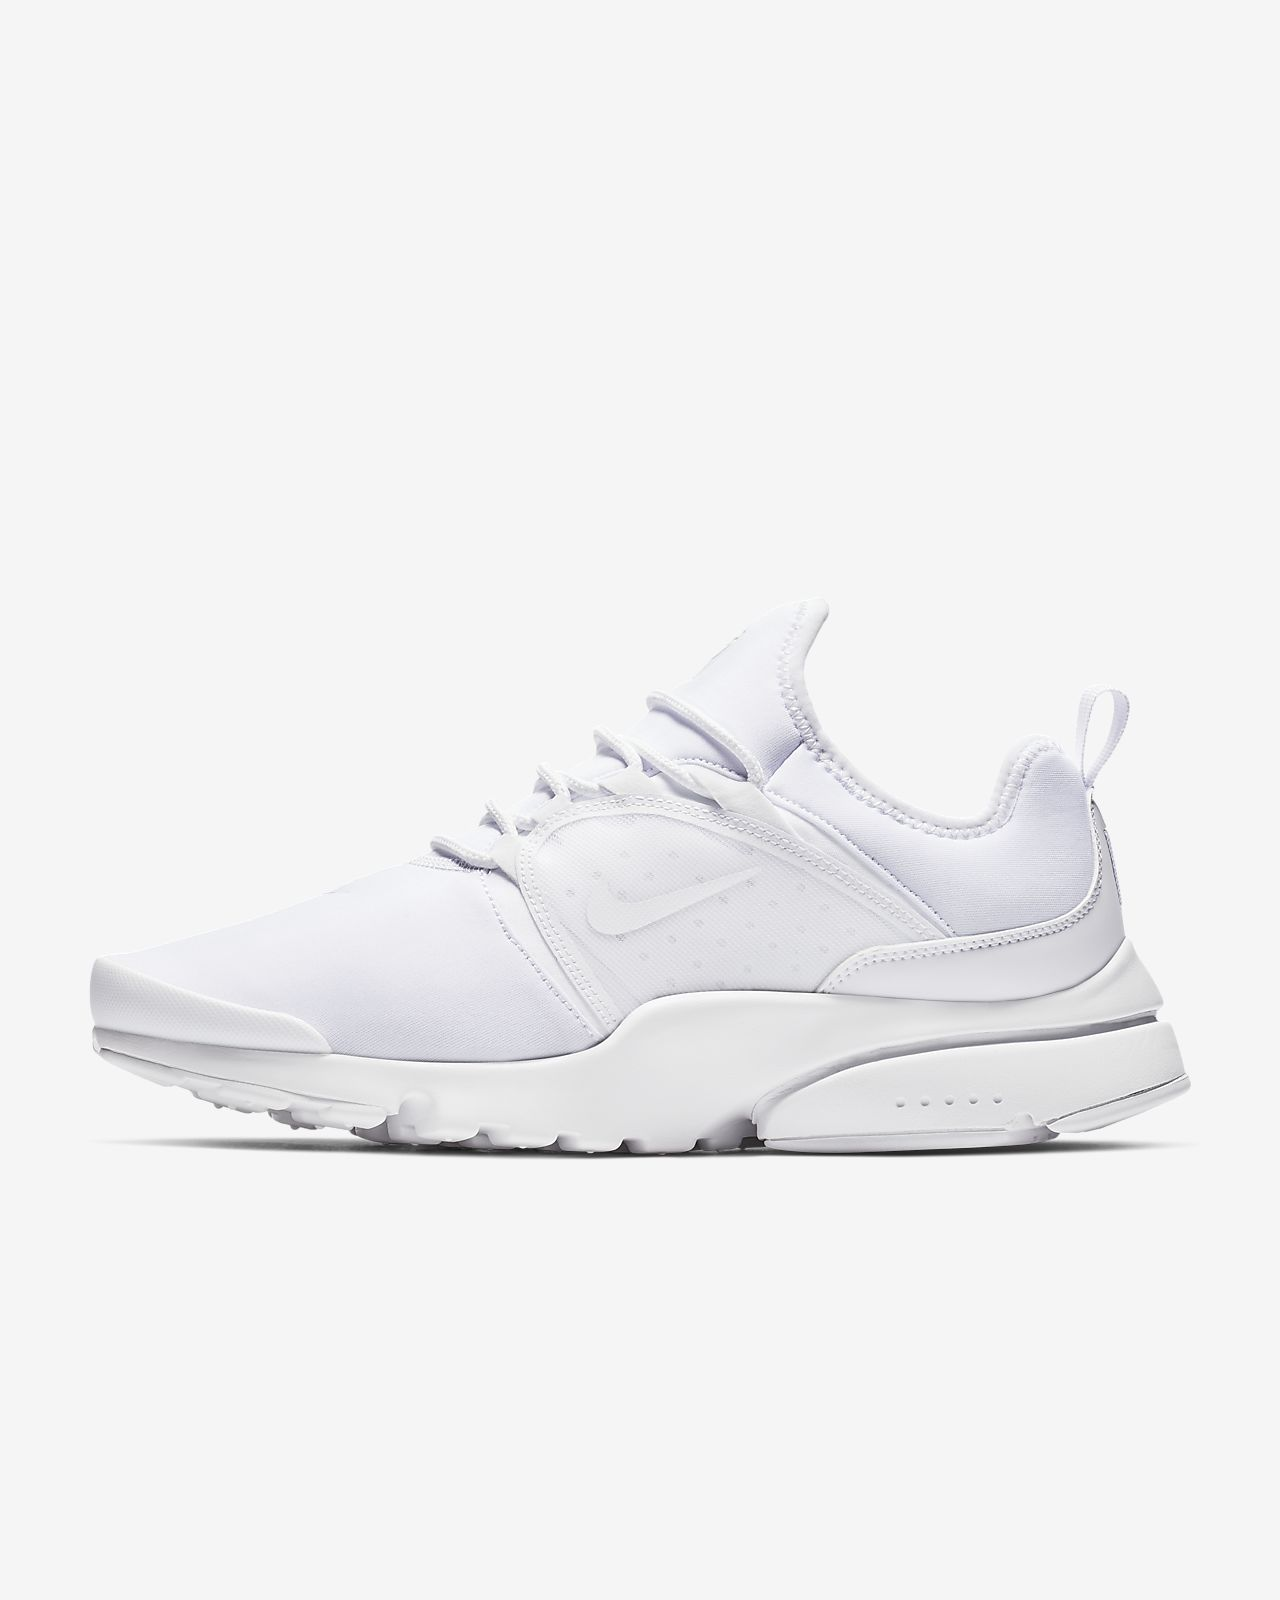 new concept 58158 1db53 ... Chaussure Nike Presto Fly World pour Homme